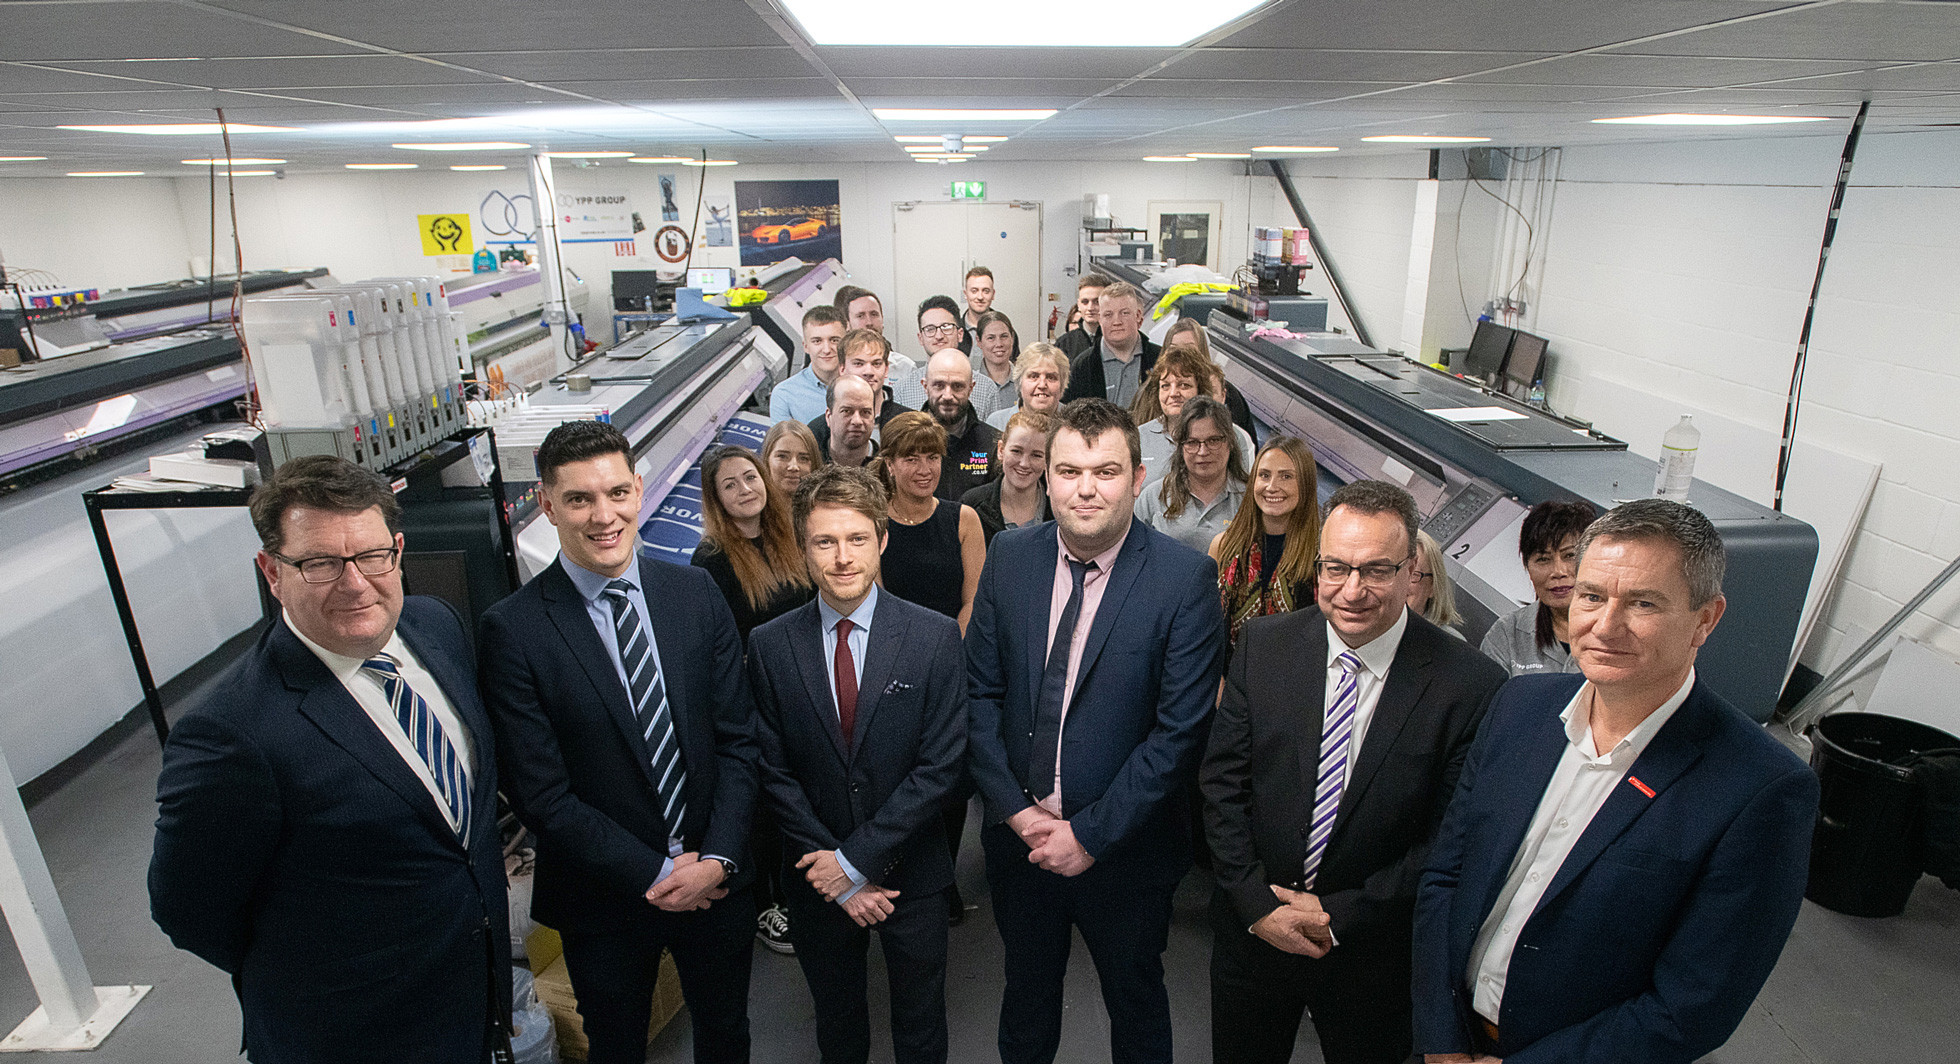 New Faces and a New Vision for YPP